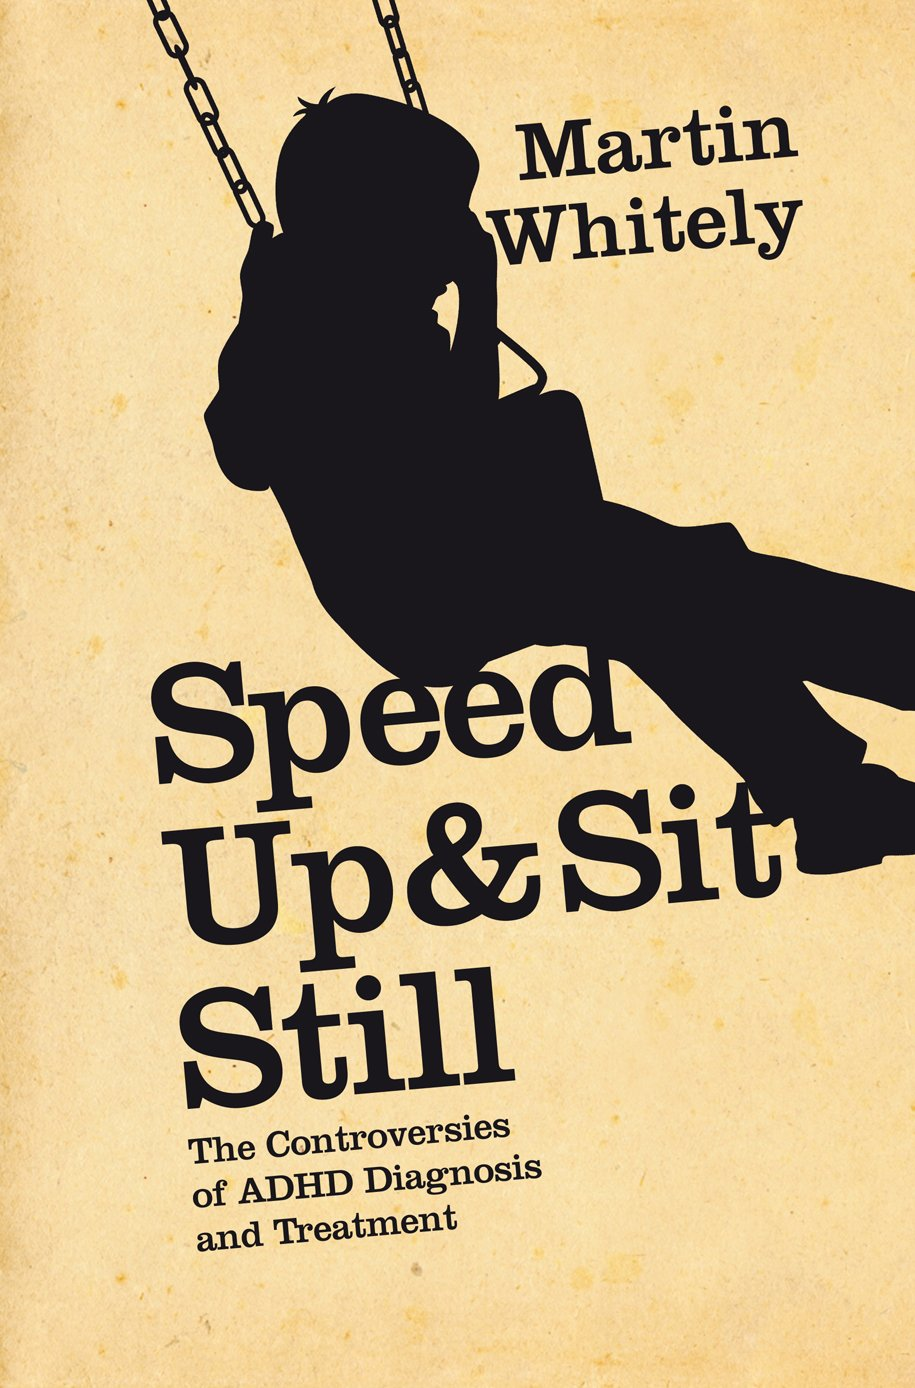 Whitely, Martin. Speed Up & Sit Still: The Controversies of ADHD Diagnosis and Treatment